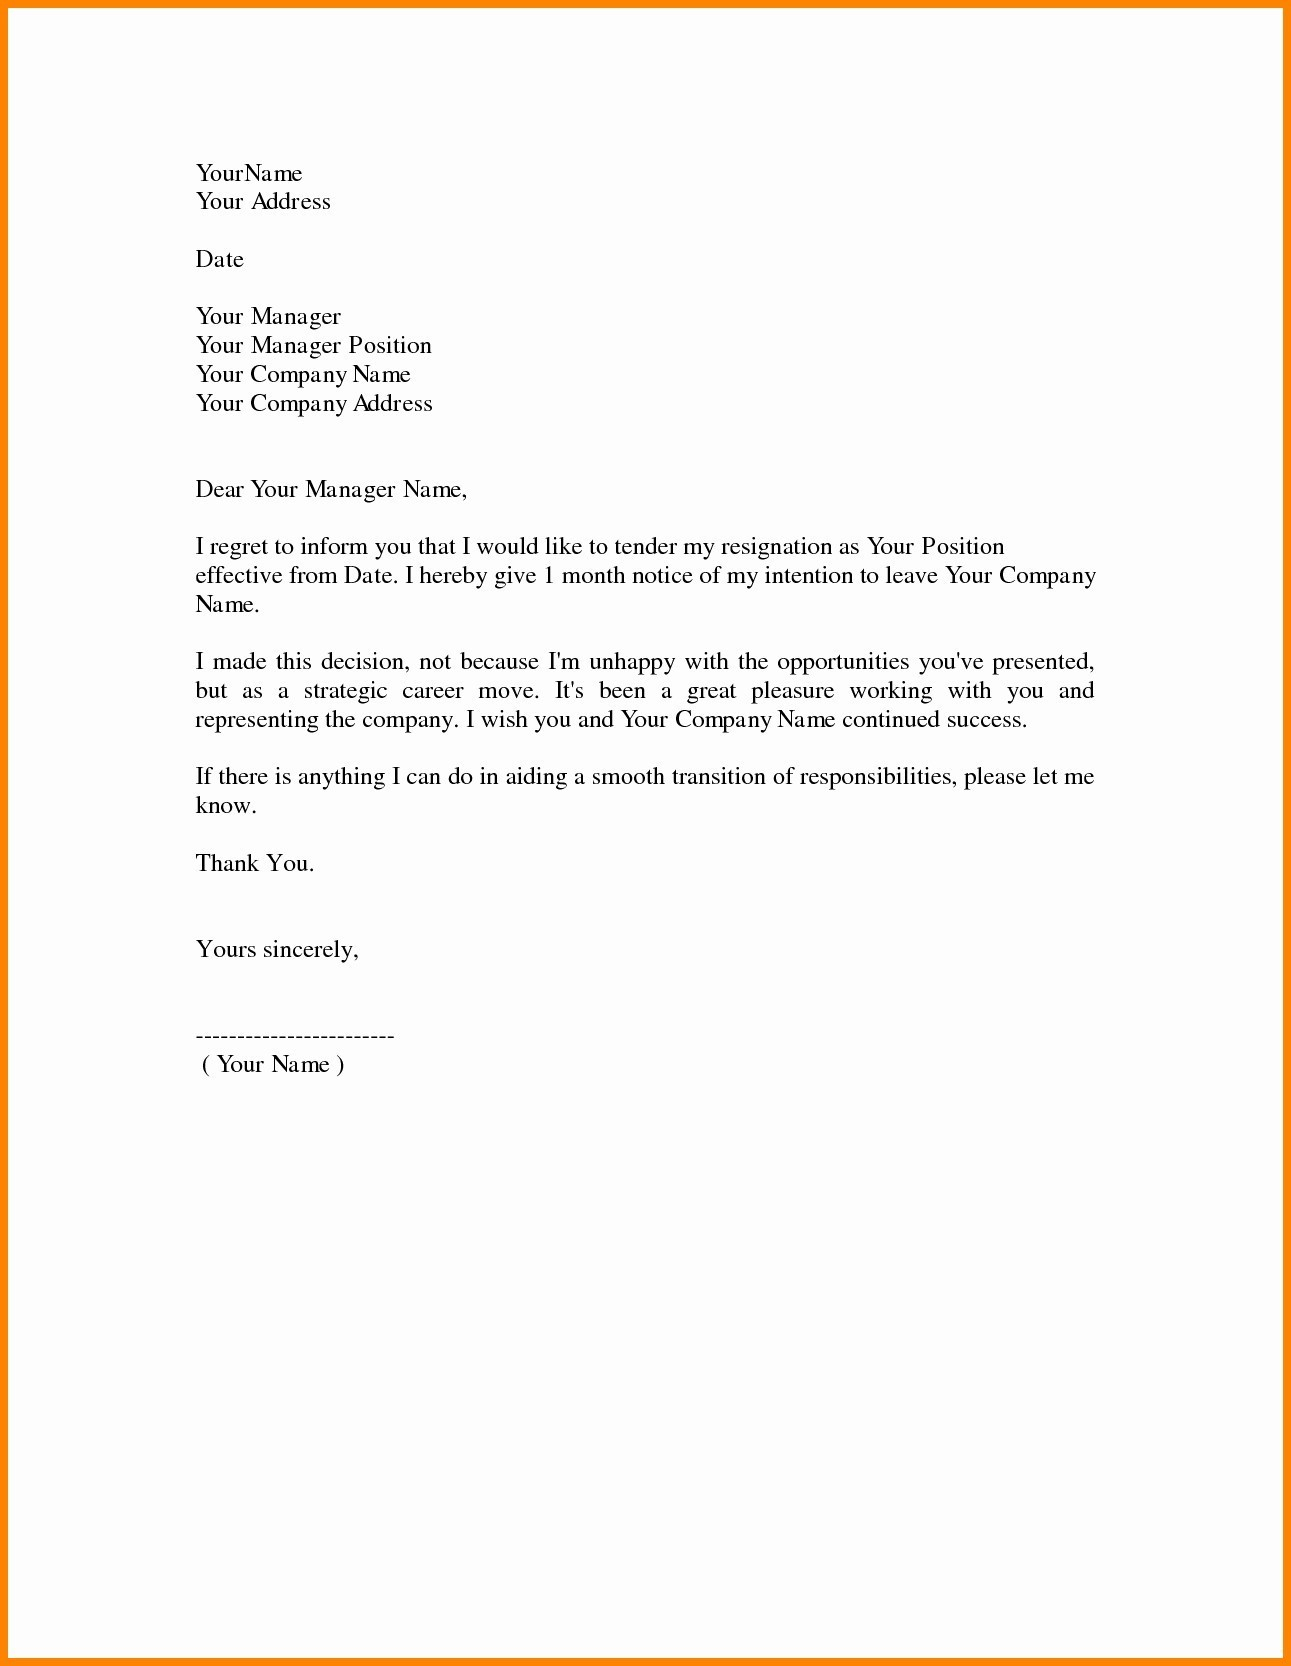 Resignation Letter Template Doc Samples | Letter Cover Templates